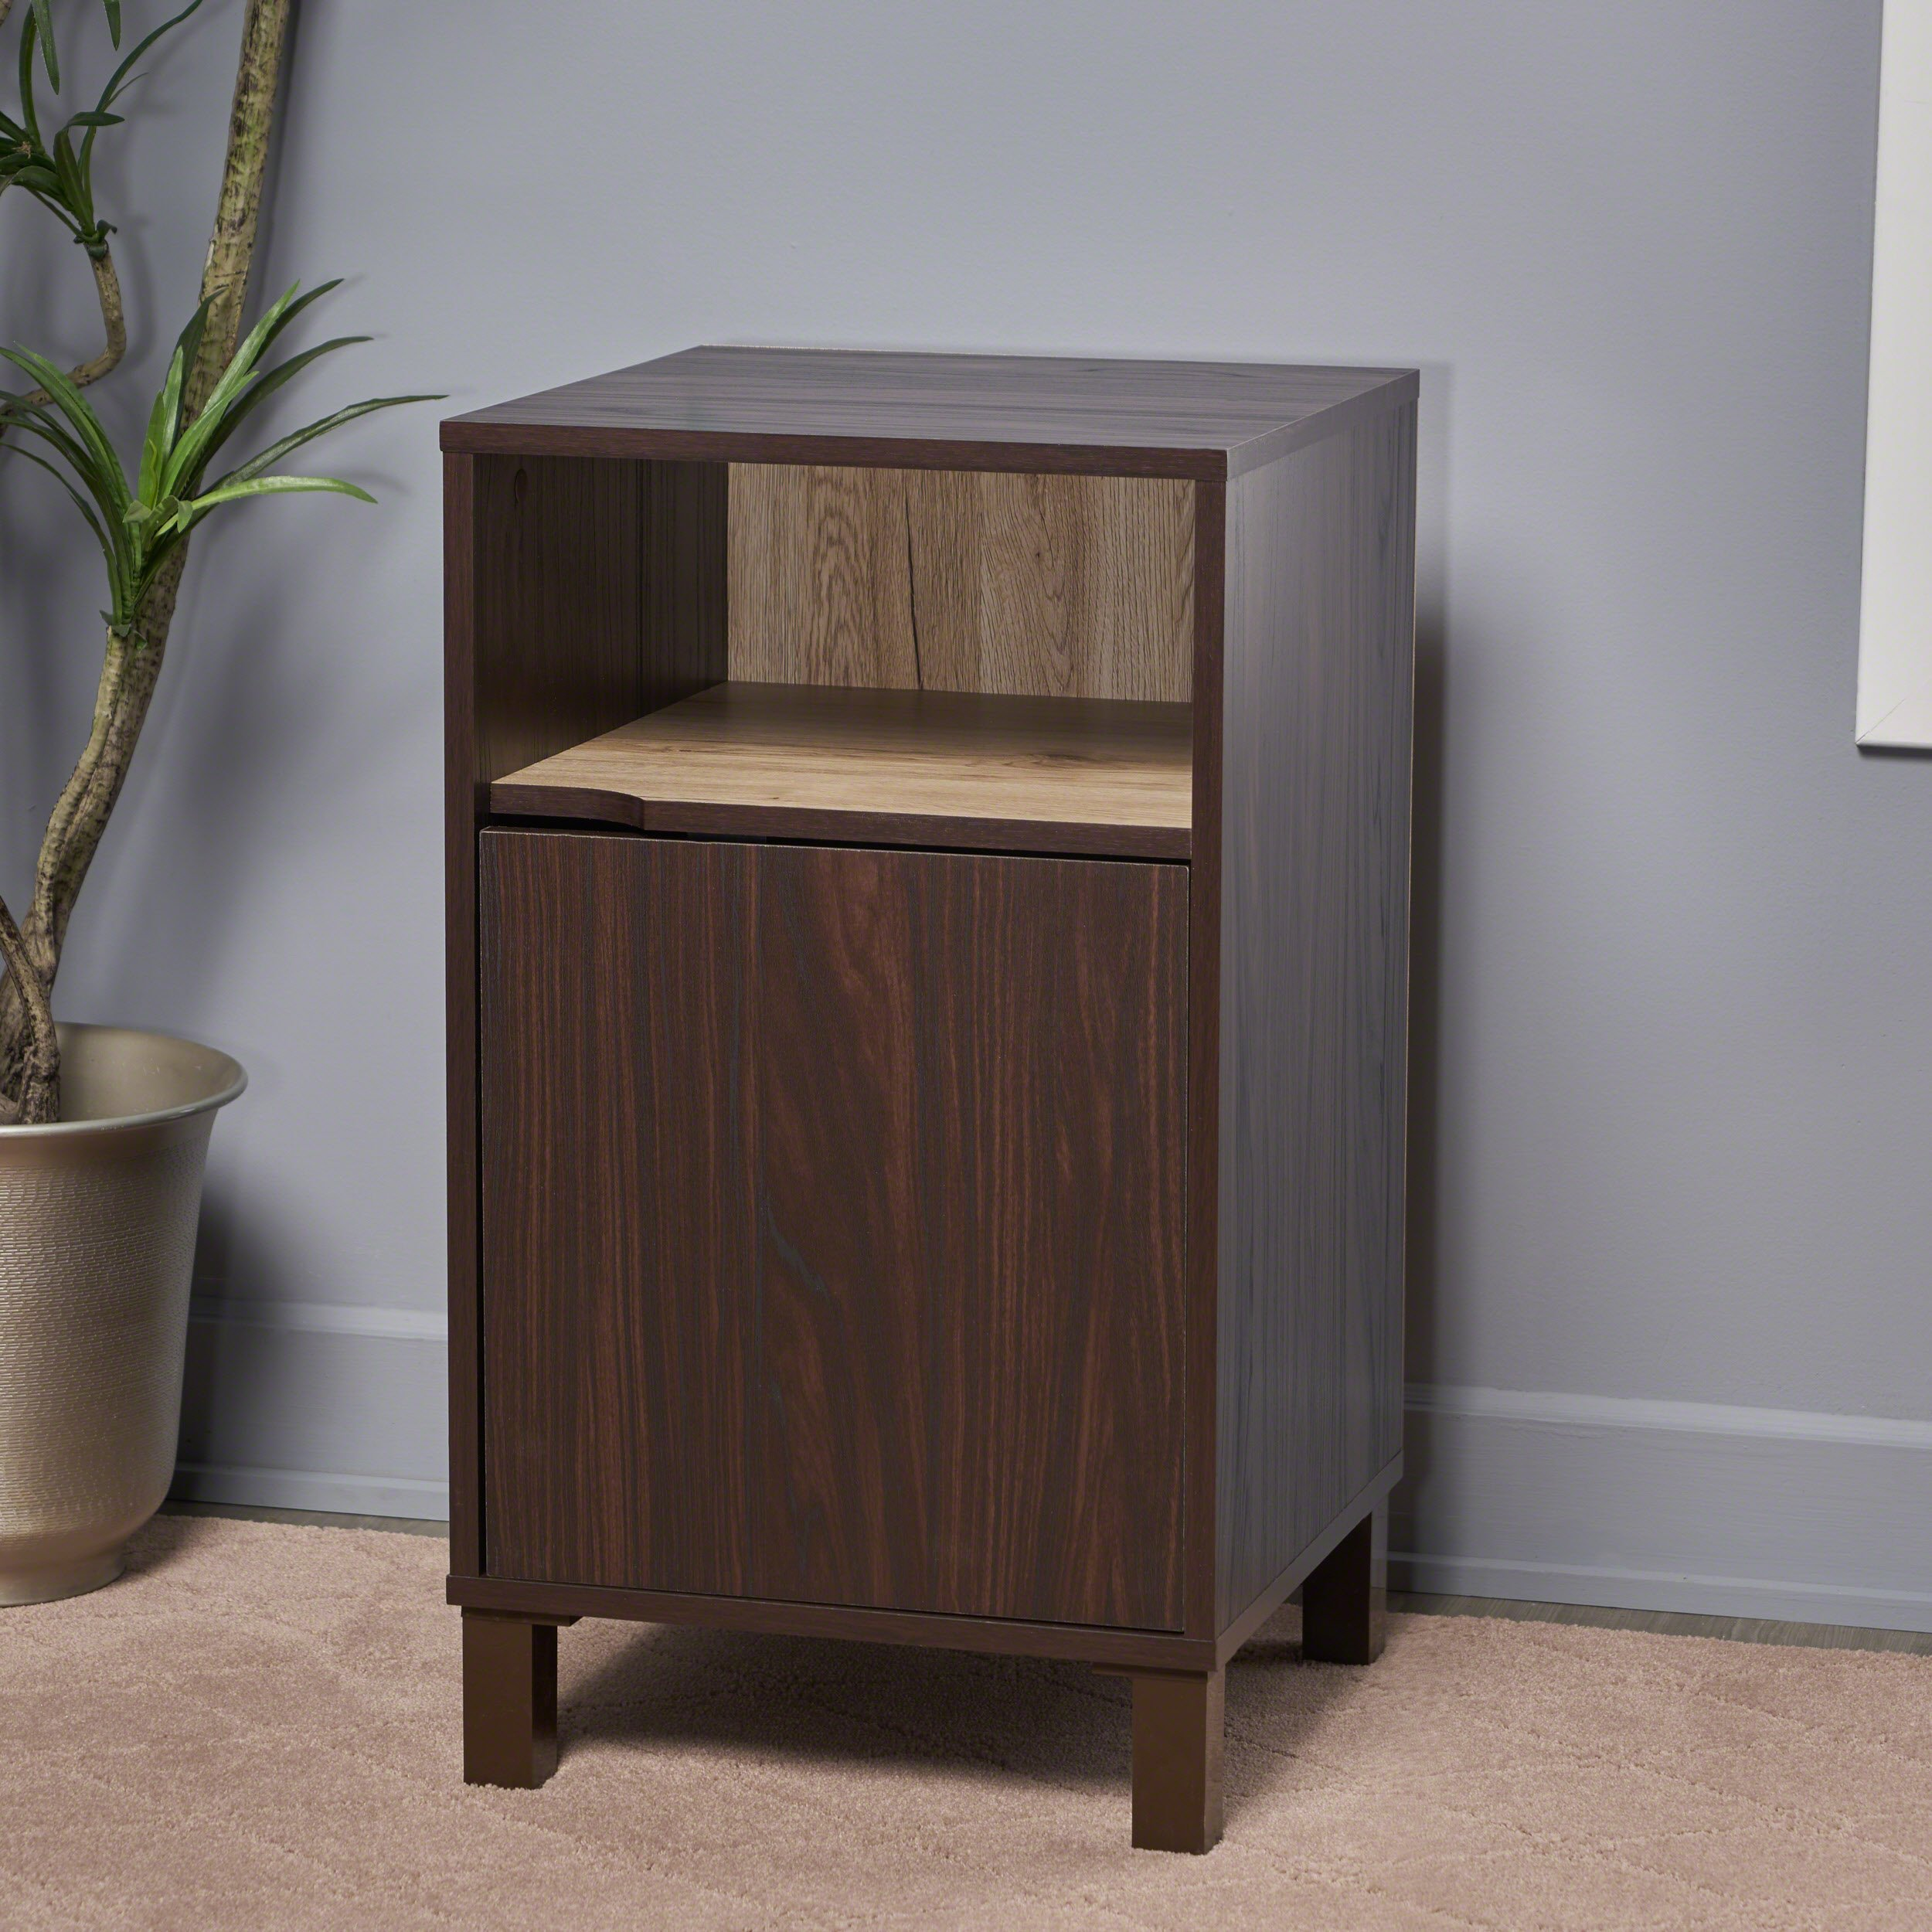 Christopher Knight Home 303655 Linnea Wood Cabinet, Walnut/Sanremo Oak/Brown by Christopher Knight Home (Image #2)